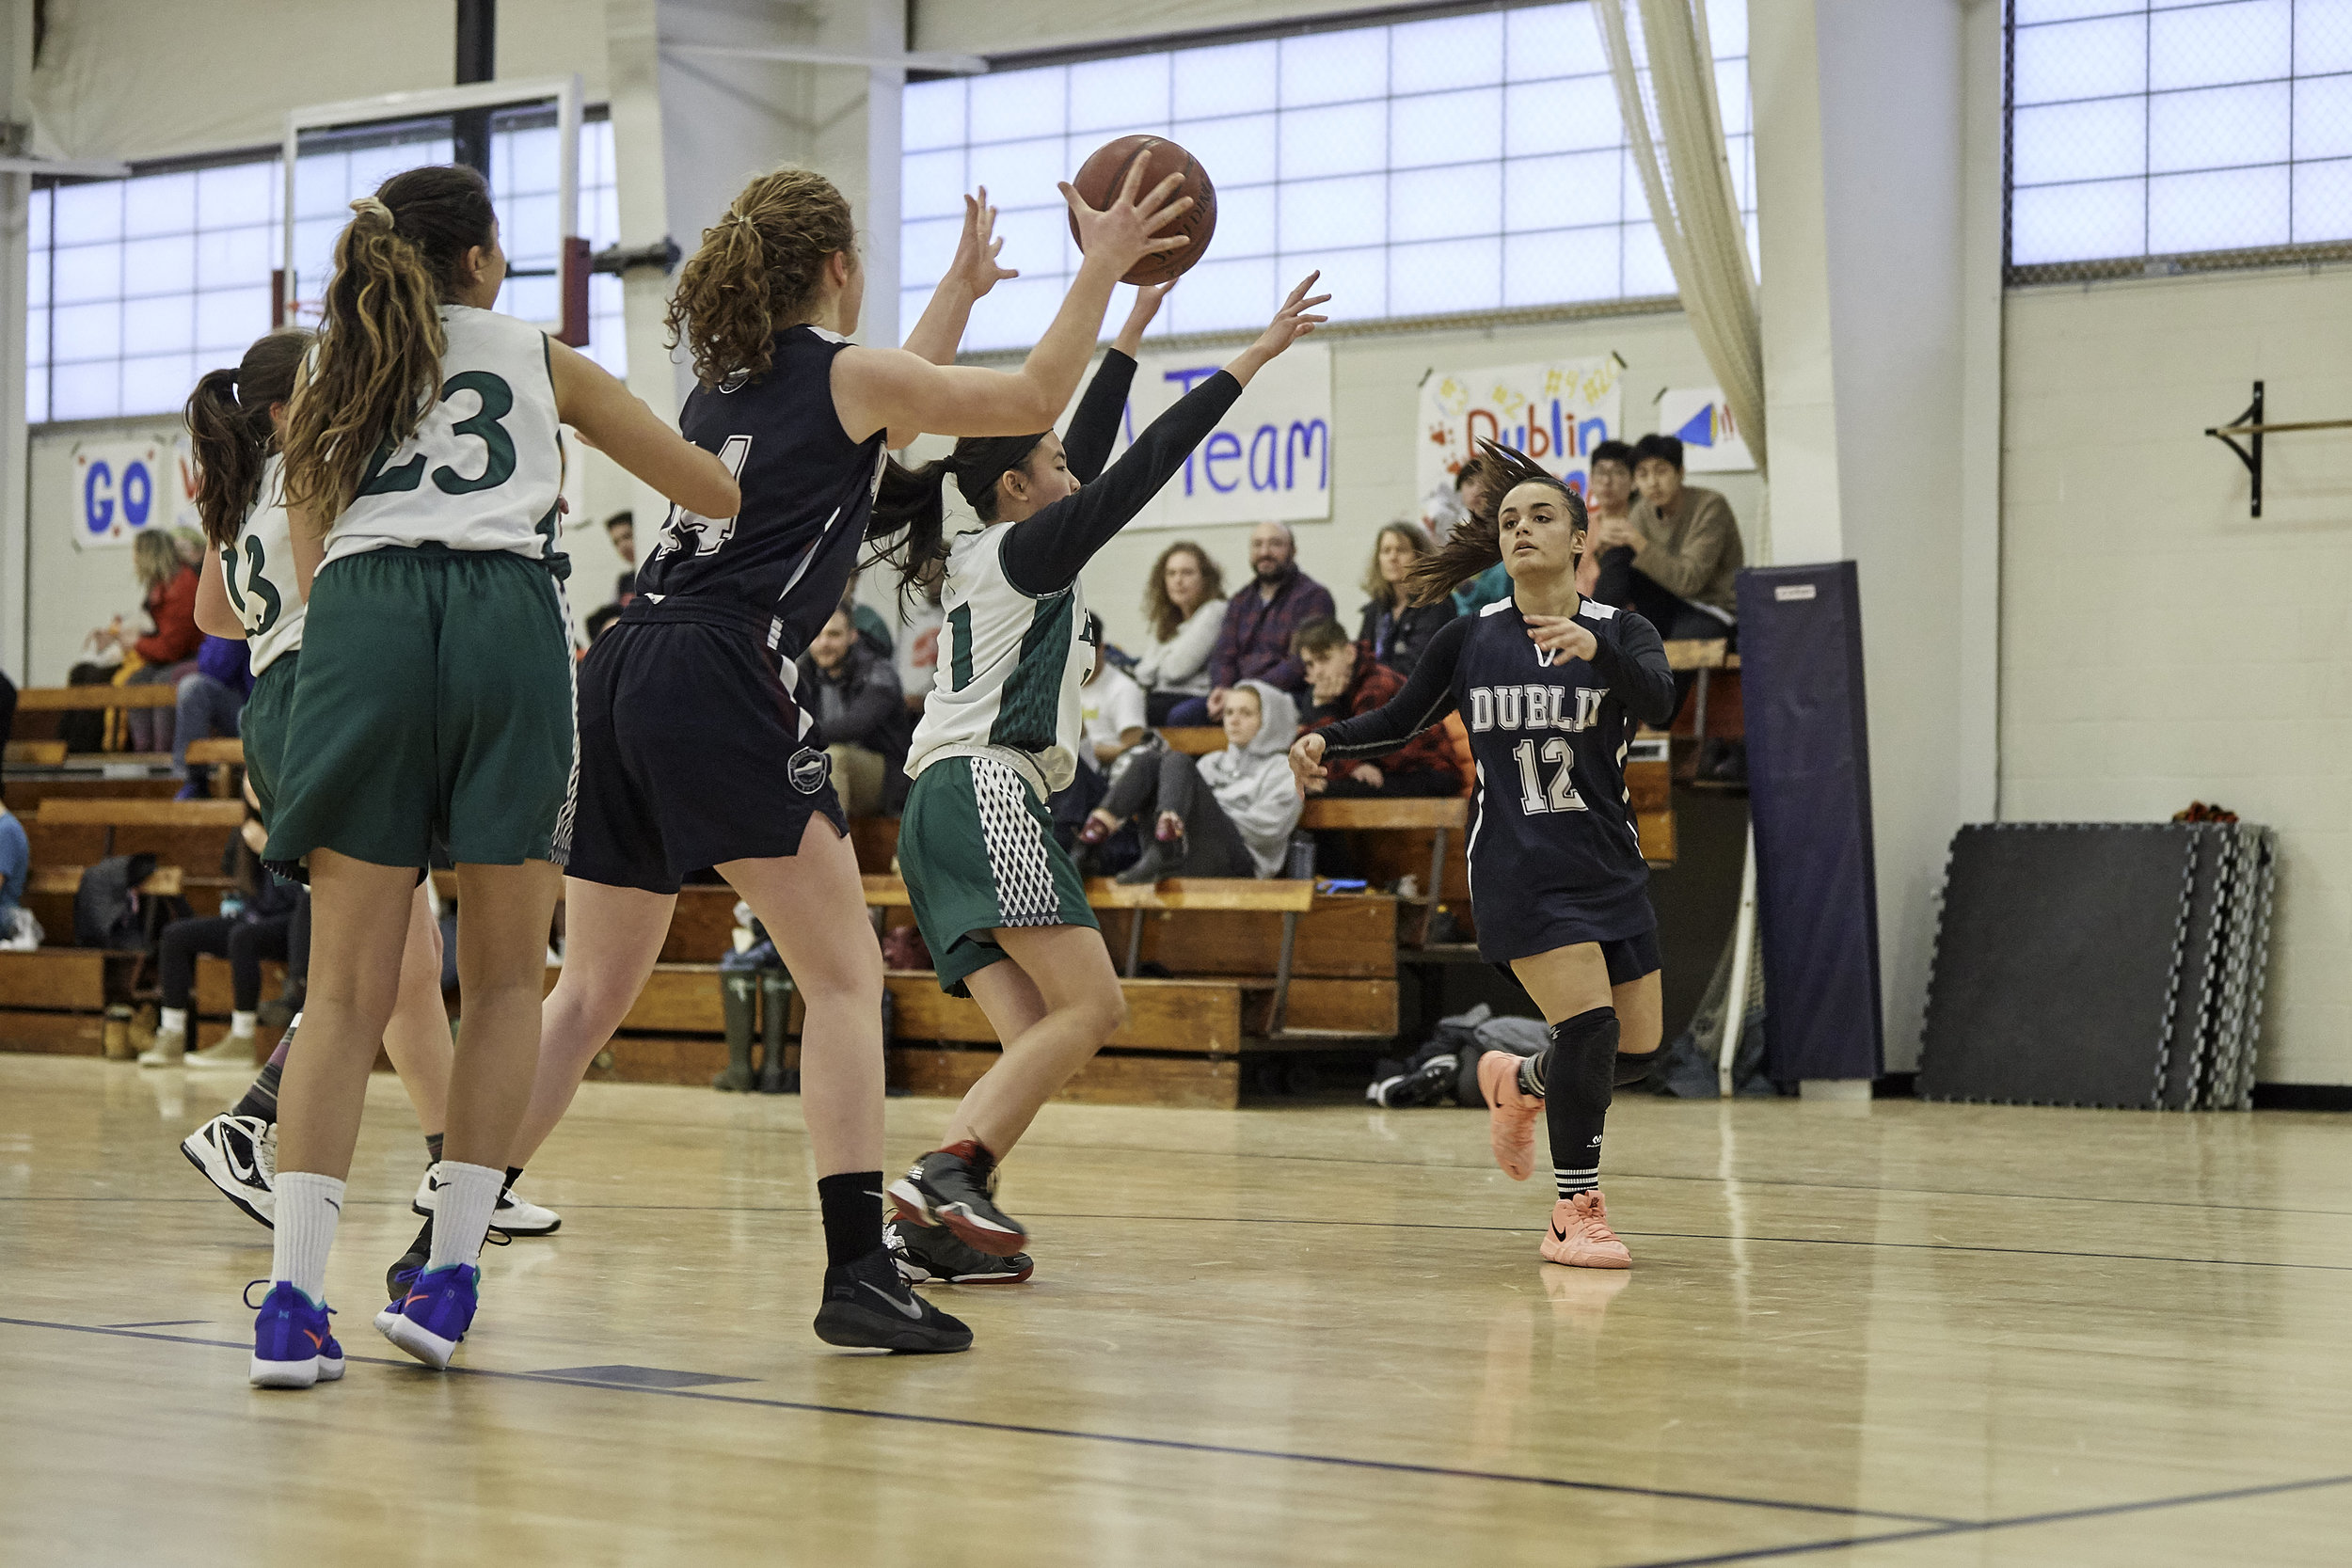 Basketball vs Putney School, February 9, 2019 - 167163.jpg